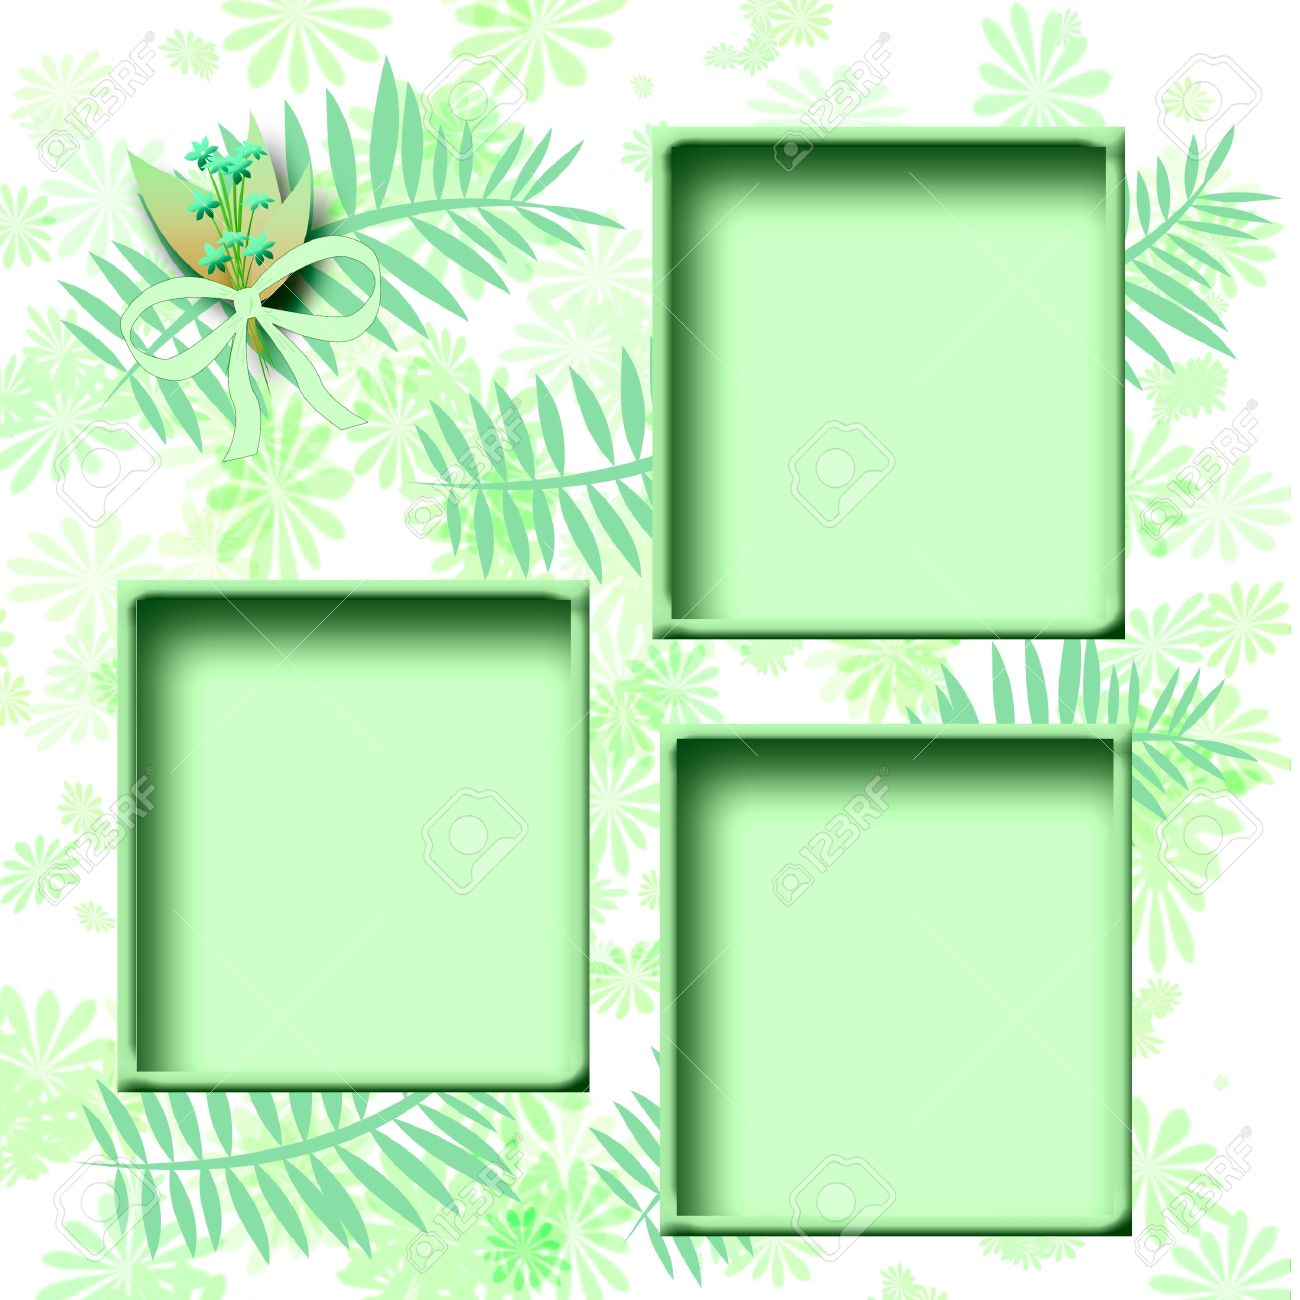 illustration aqua scrapbook page cutouts frames on floral illustration